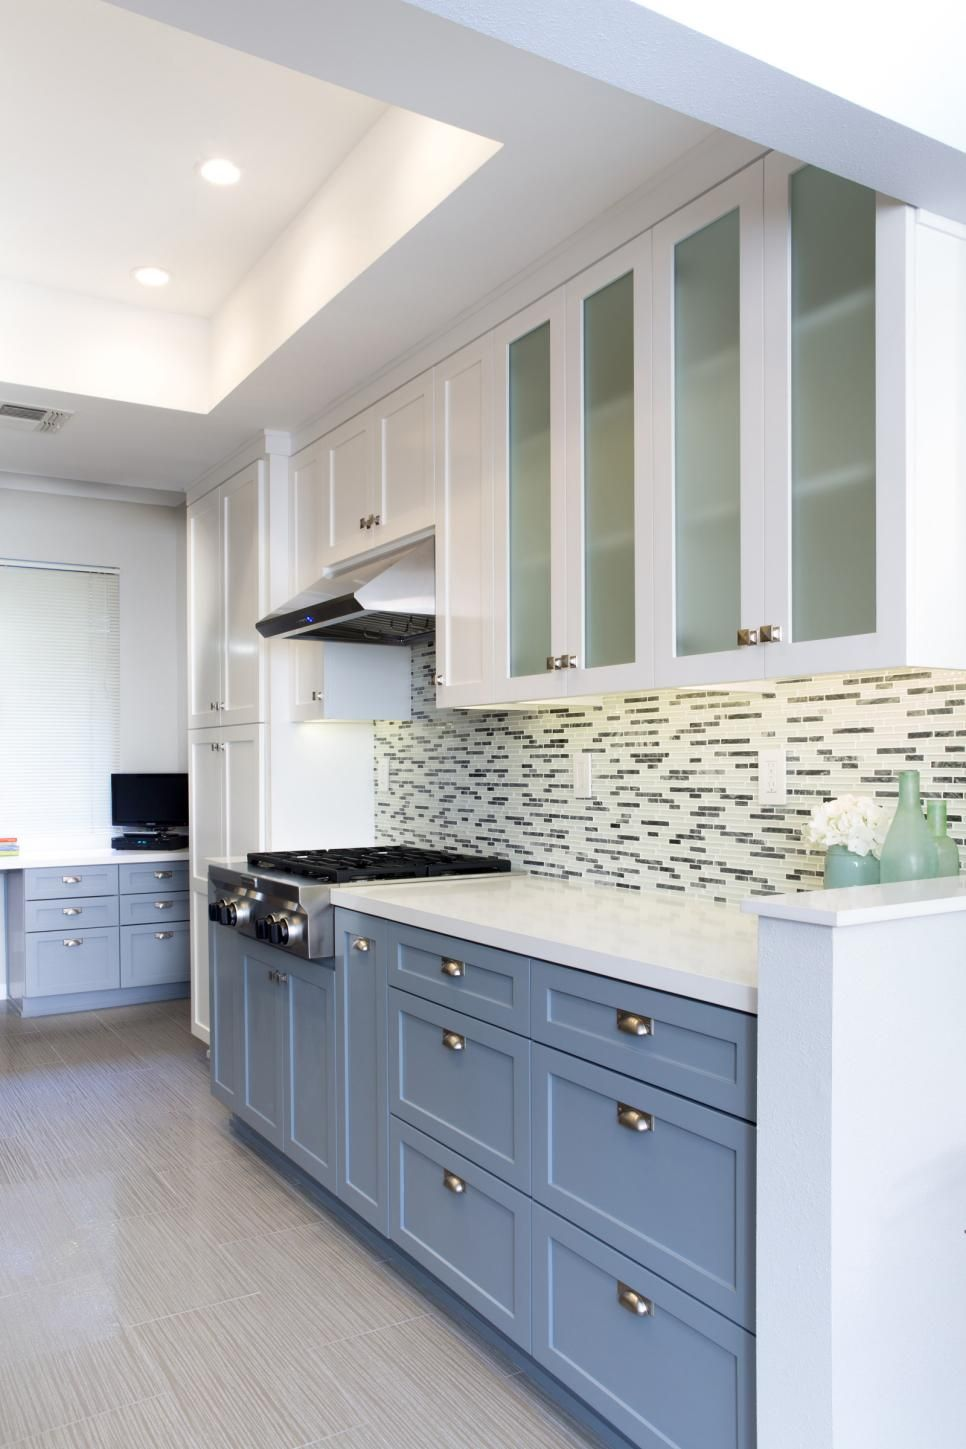 This Gray And White Kitchen Features Two Cabinet Colors And A Striking Glass Tile Backspla Rustic Kitchen Cabinets Kitchen Renovation Two Tone Kitchen Cabinets